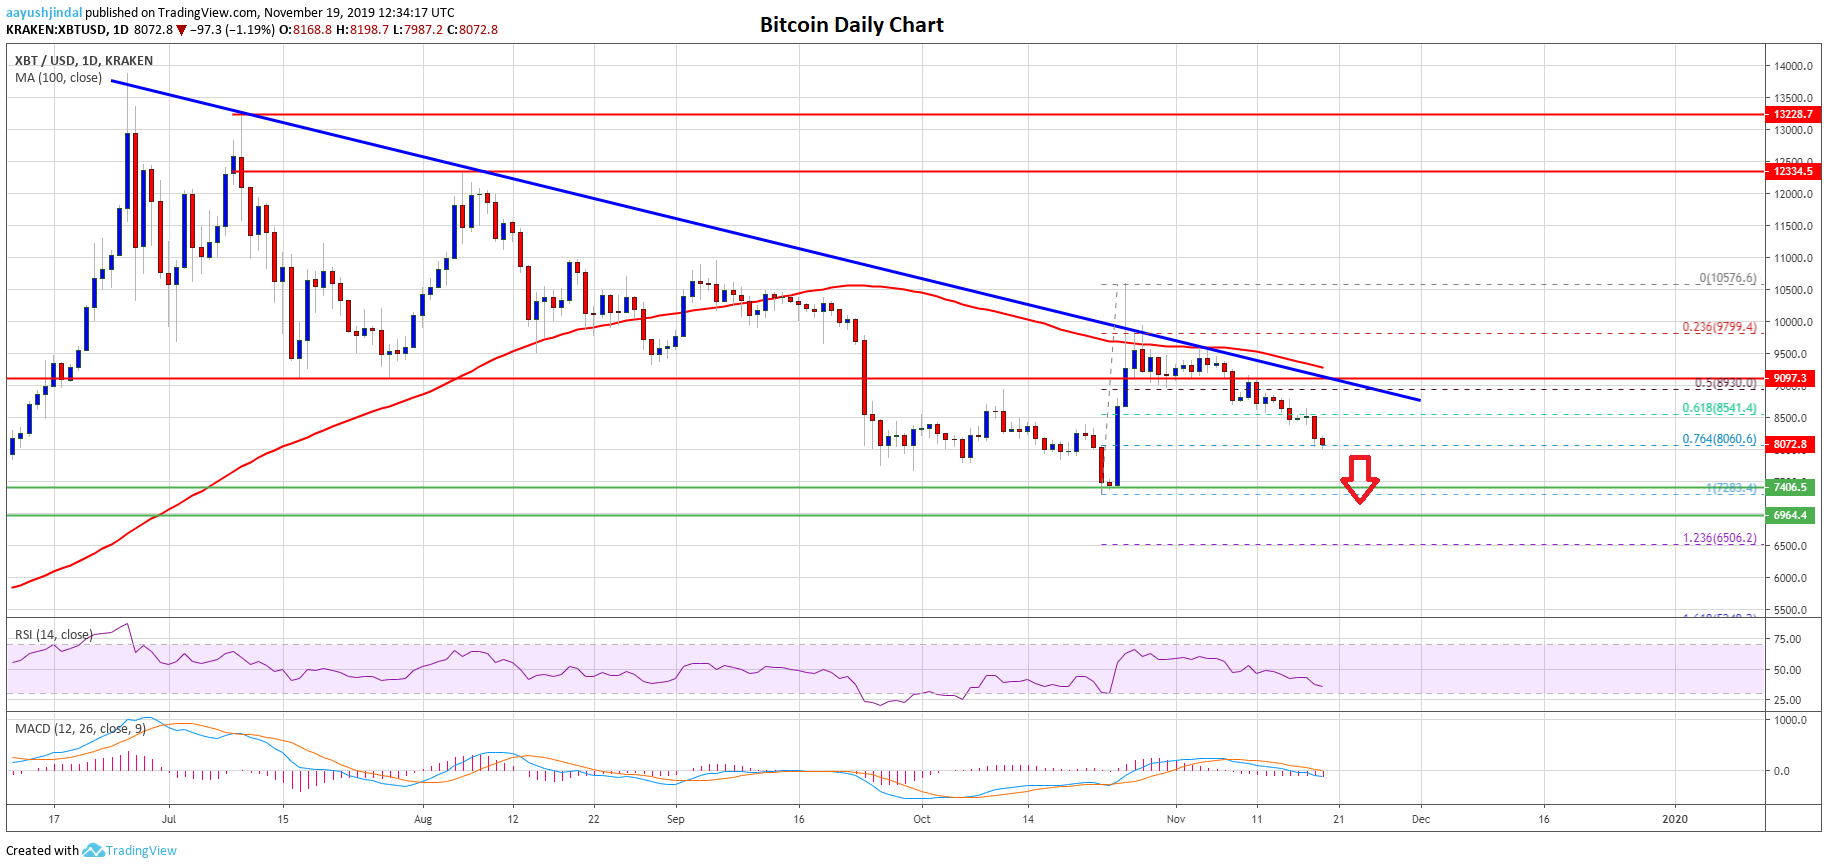 Bitcoin Price Is Currently In A Downtrend Below The 9100 Pivot Level Against The Us Dollar The Price Is Trading Well Bitcoin Bitcoin Price Bitcoin Business